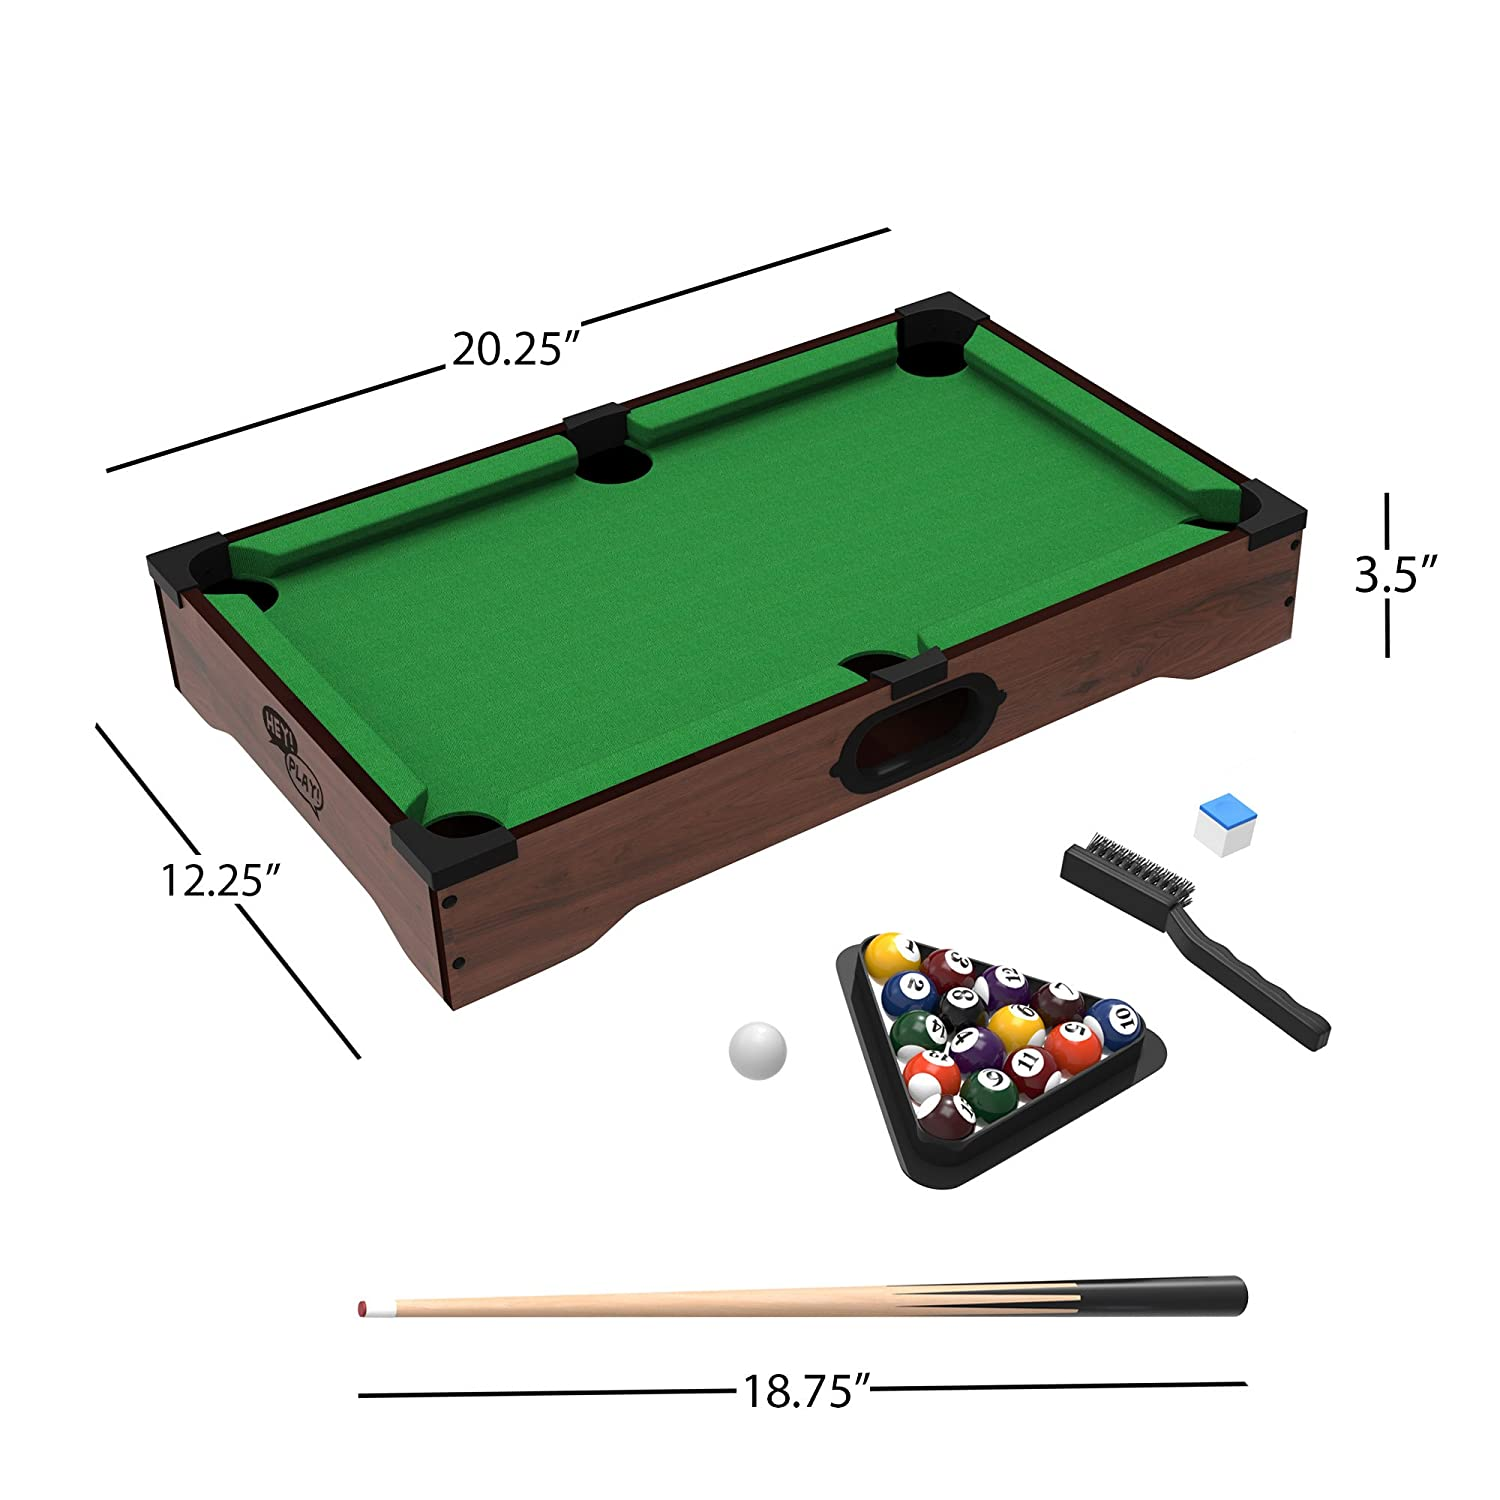 Amazoncom Trademark Mini Tabletop Pool Set Billiards Game - How much room is needed for a pool table